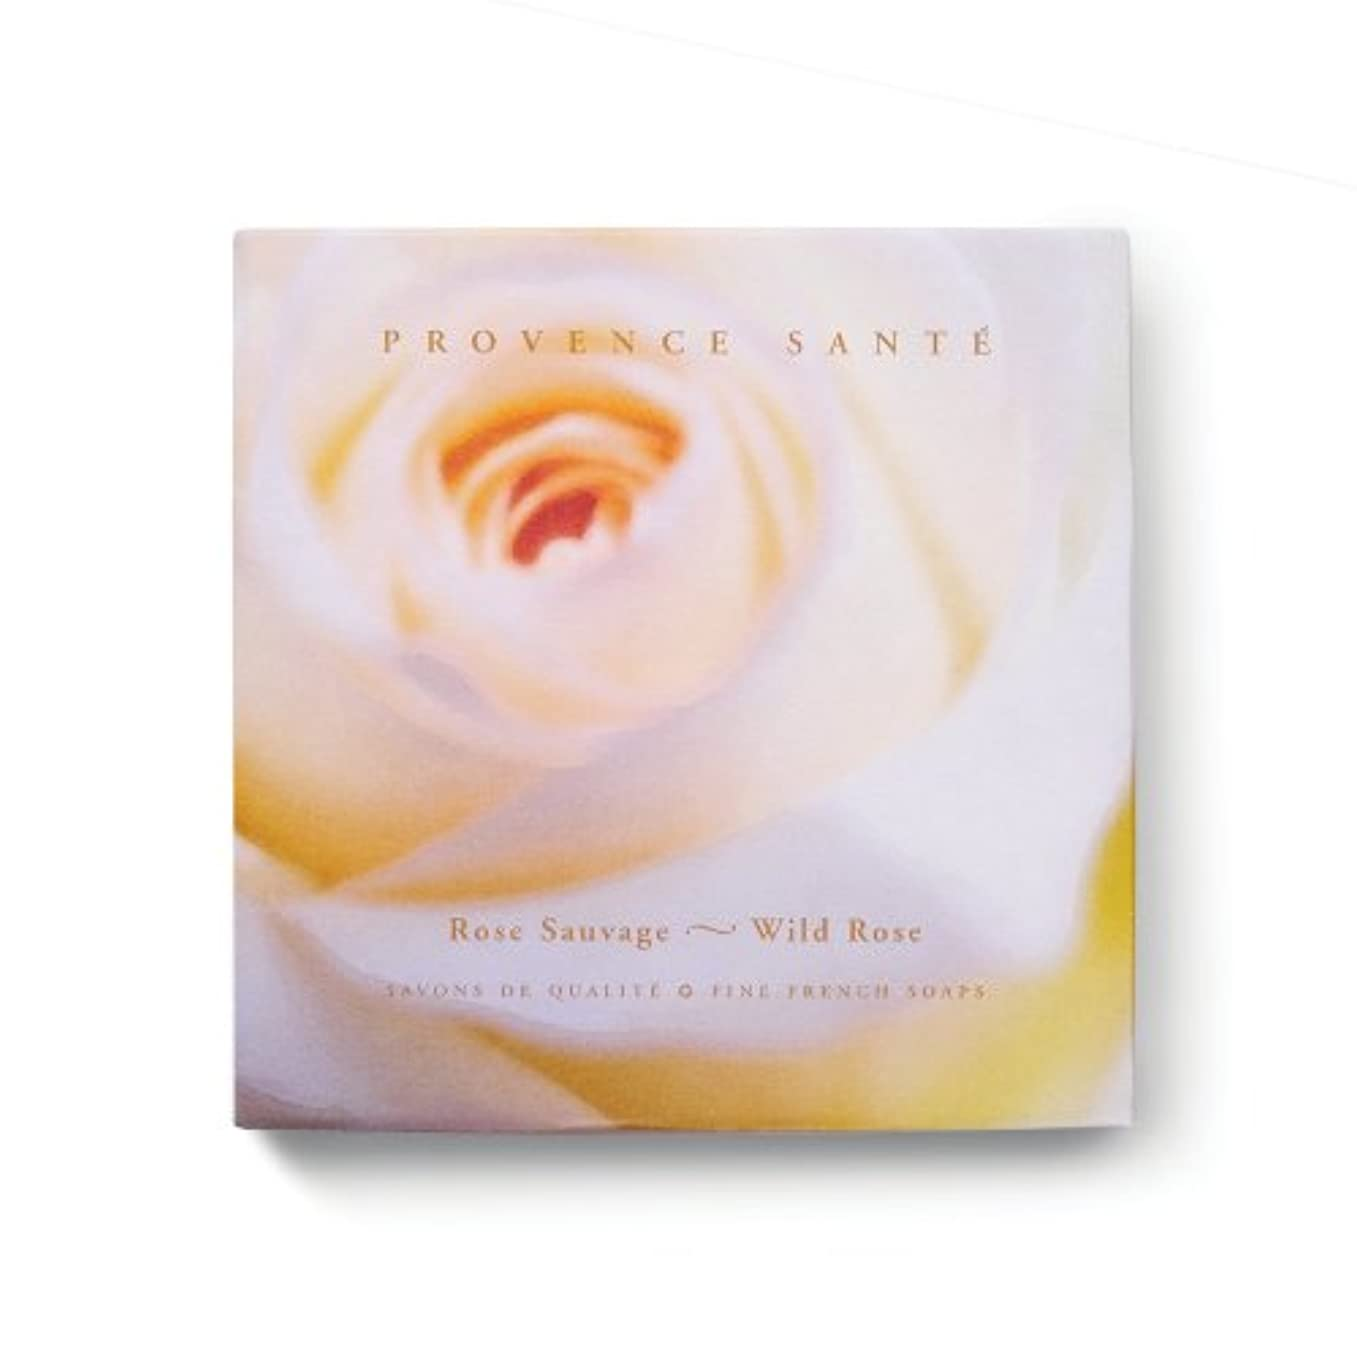 シプリー解凍する、雪解け、霜解け連結するProvence Sante PS Gift Soap Wild Rose, 2.7oz 4 Bar Gift Box by Provence Sante [並行輸入品]